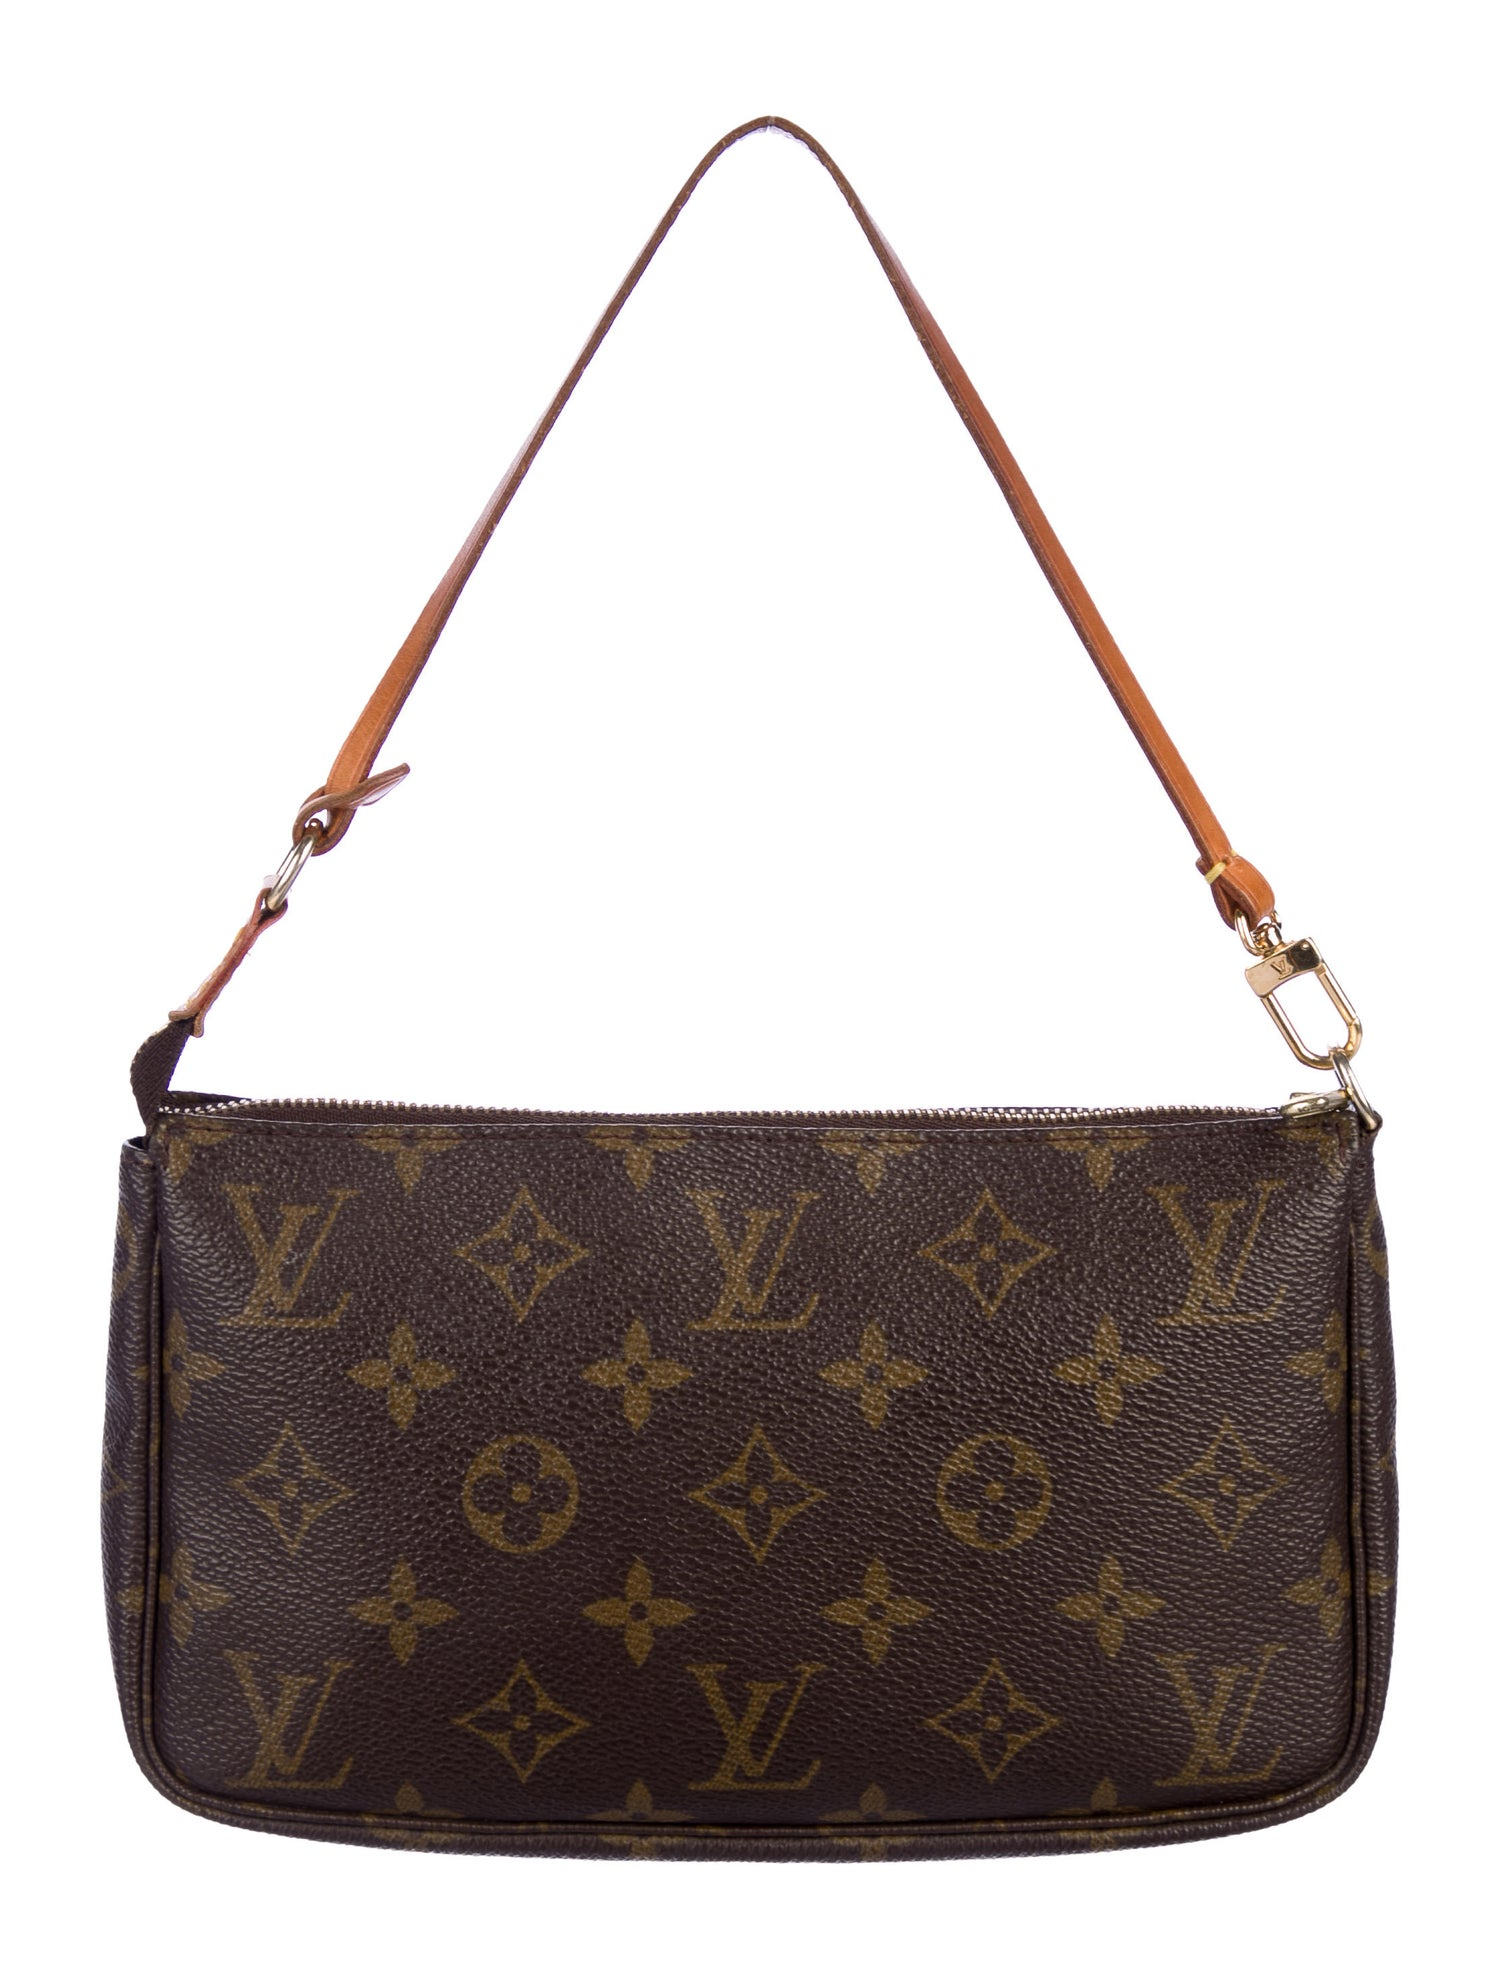 Monogram Pochette Accessoires by Louis Vuitton, available on therealreal.com for $485 Bella Hadid Bags Exact Product